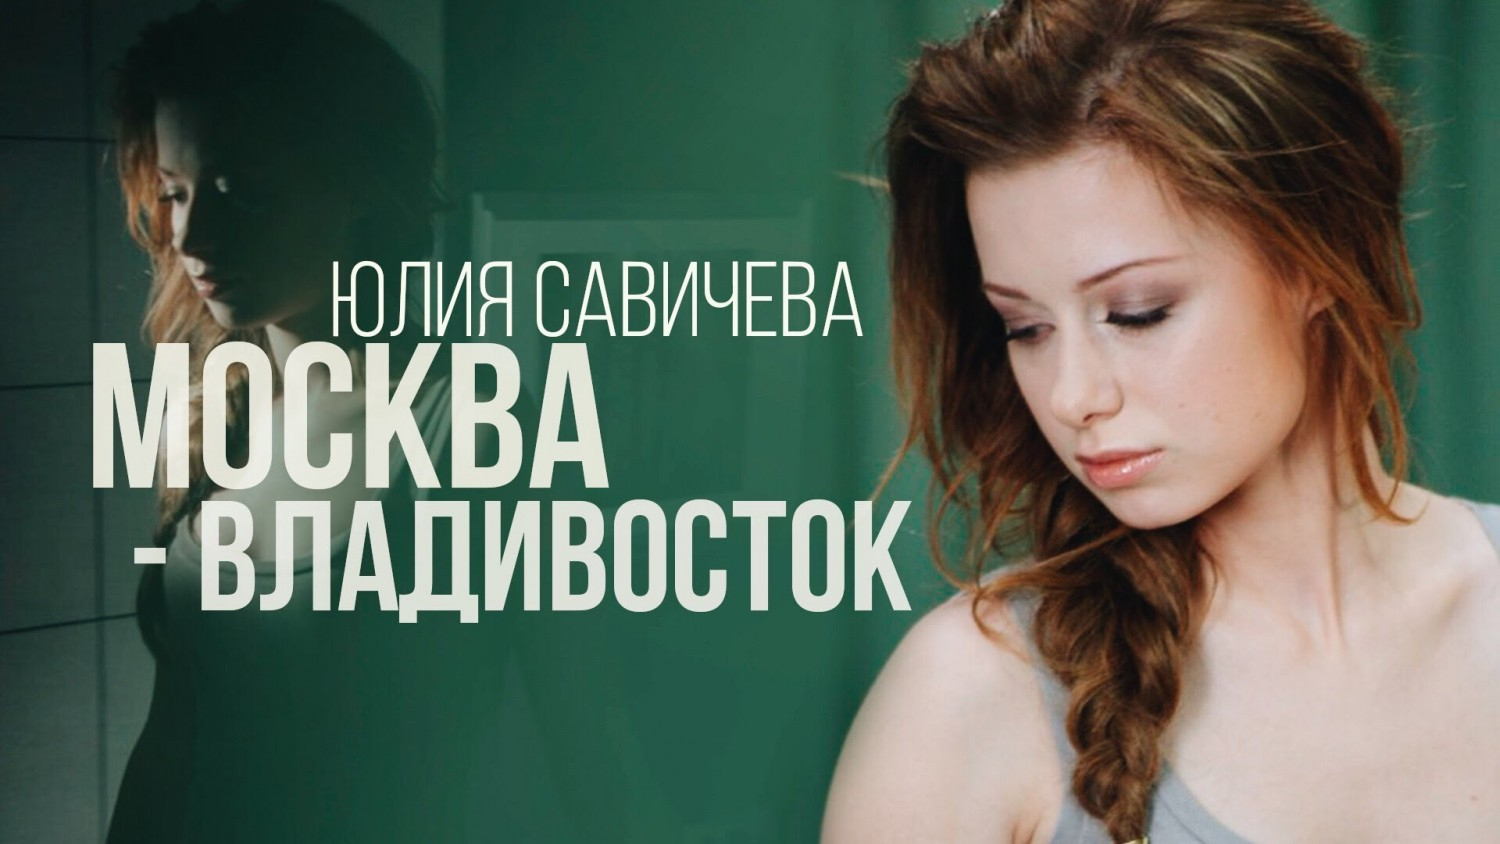 Russia Top Music August 2010